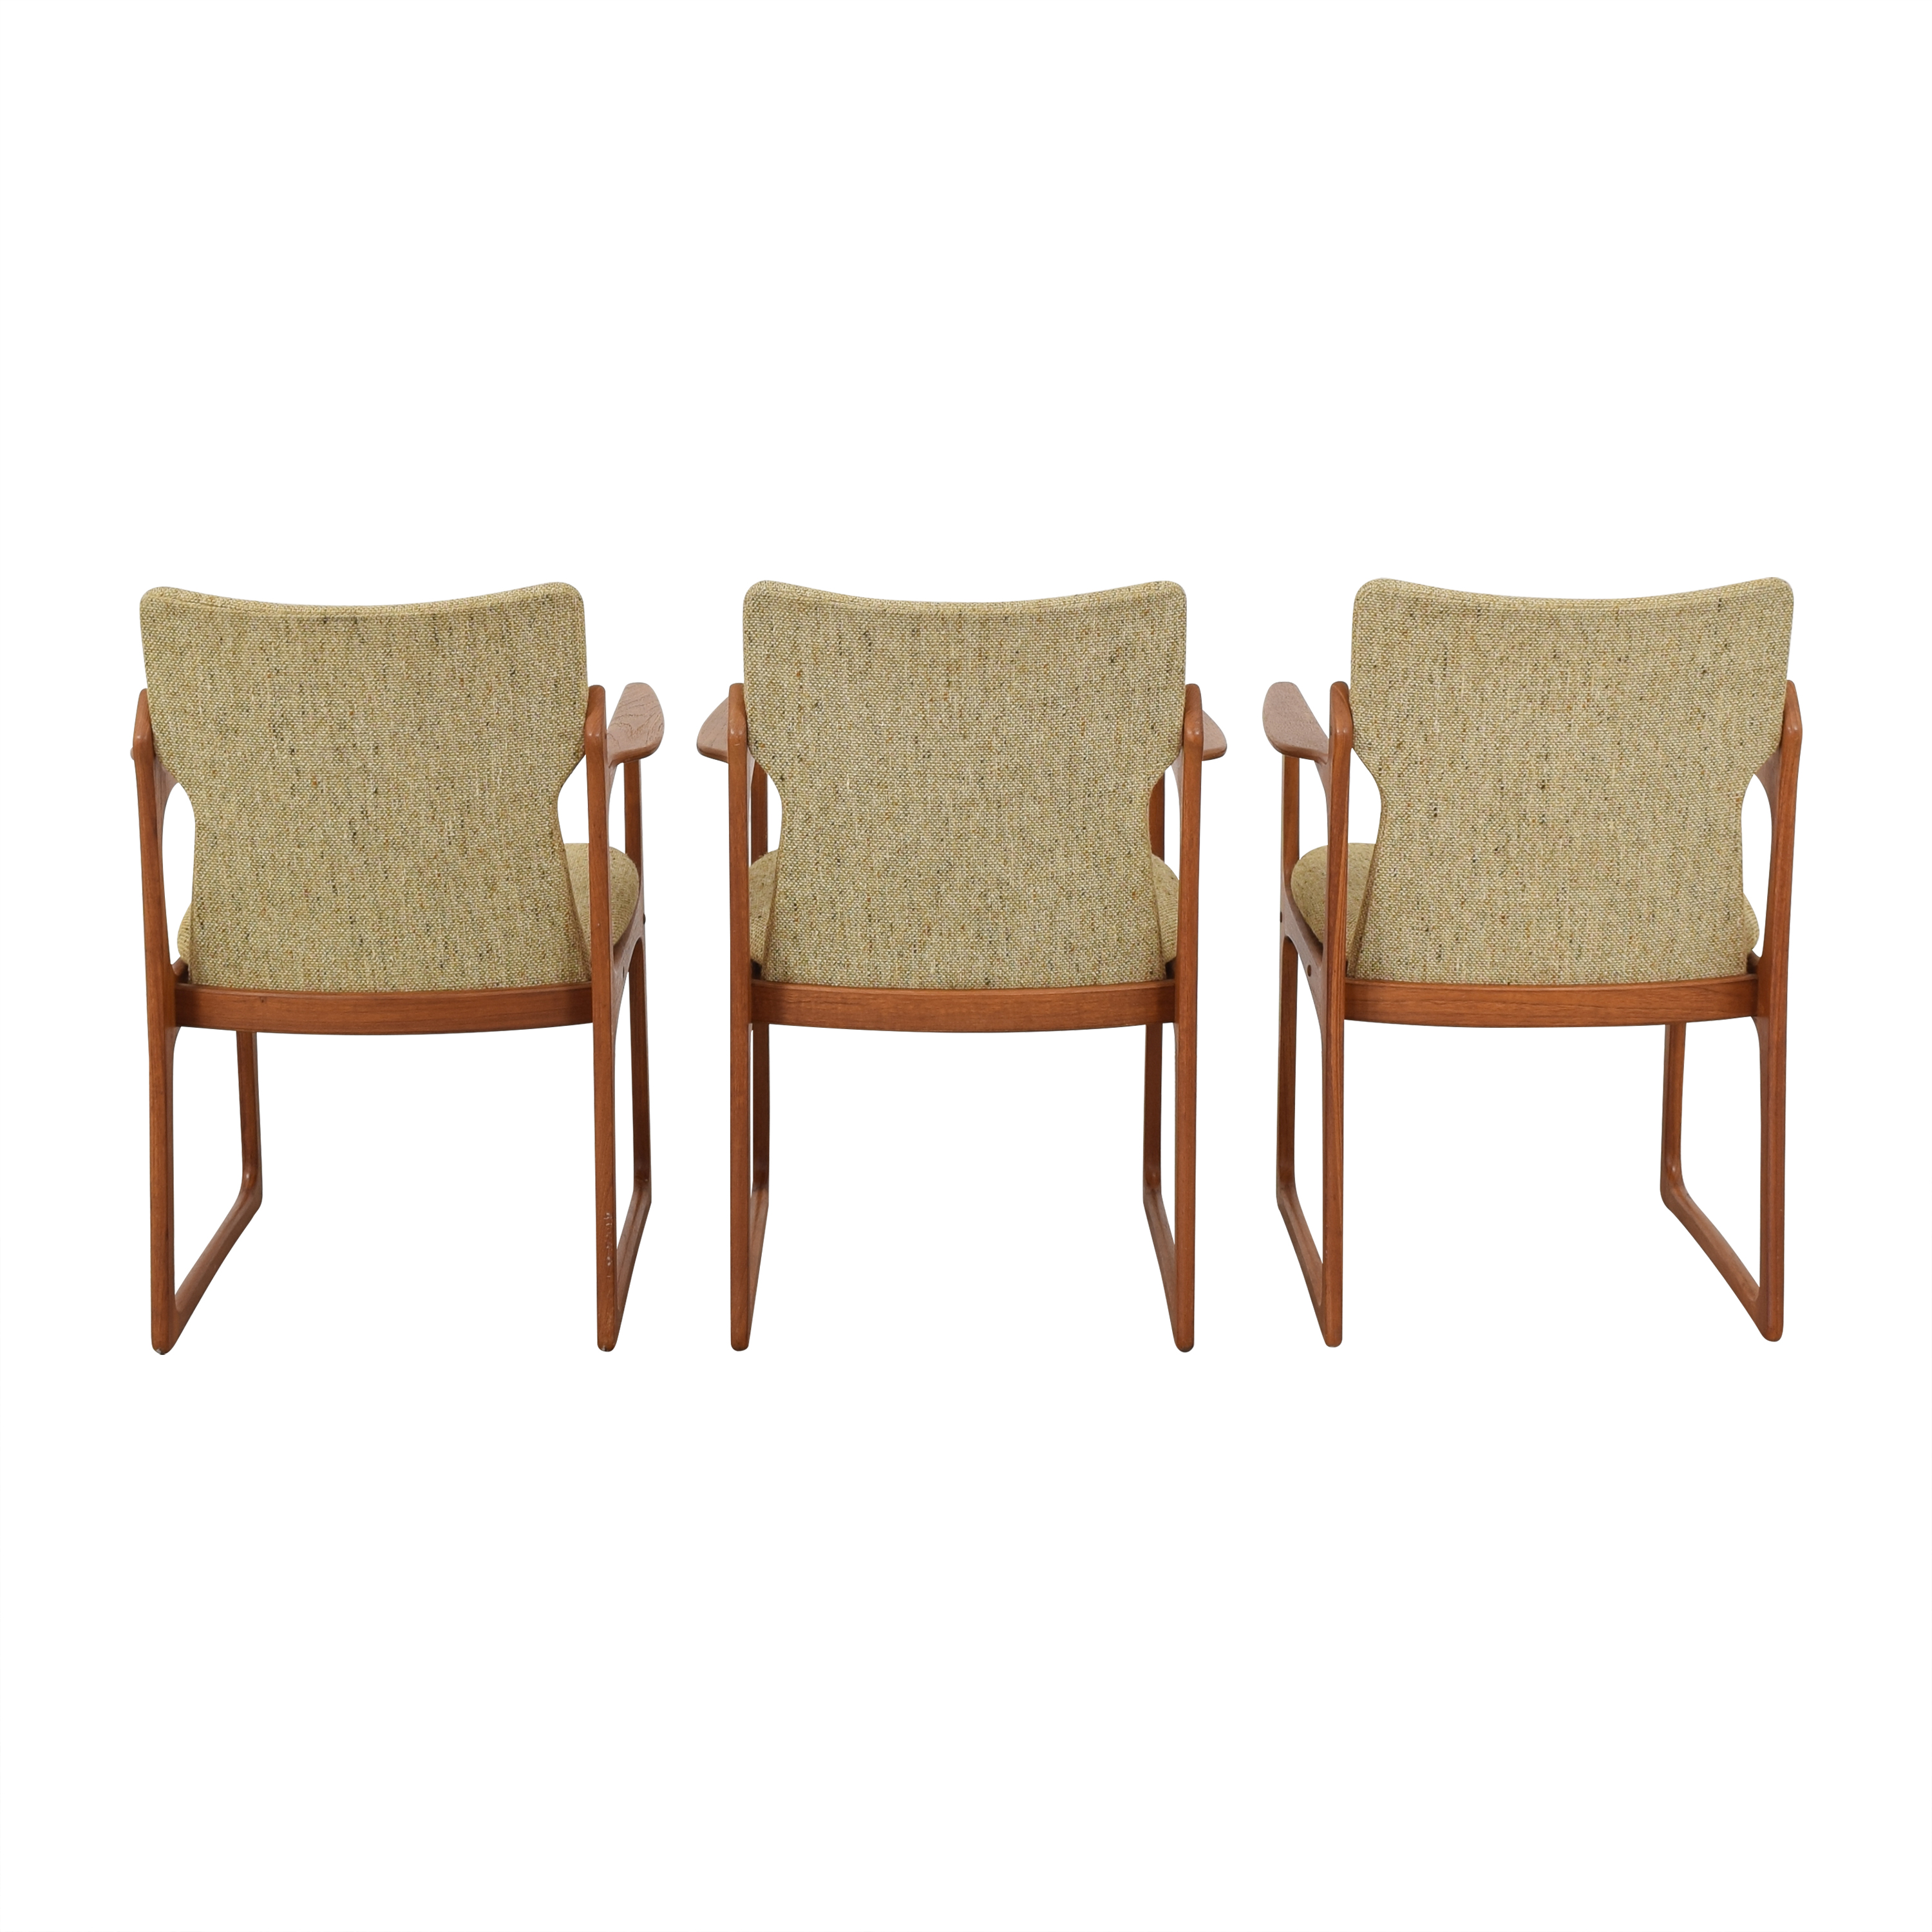 Vintage Danish Upholstered Dining Chairs  dimensions